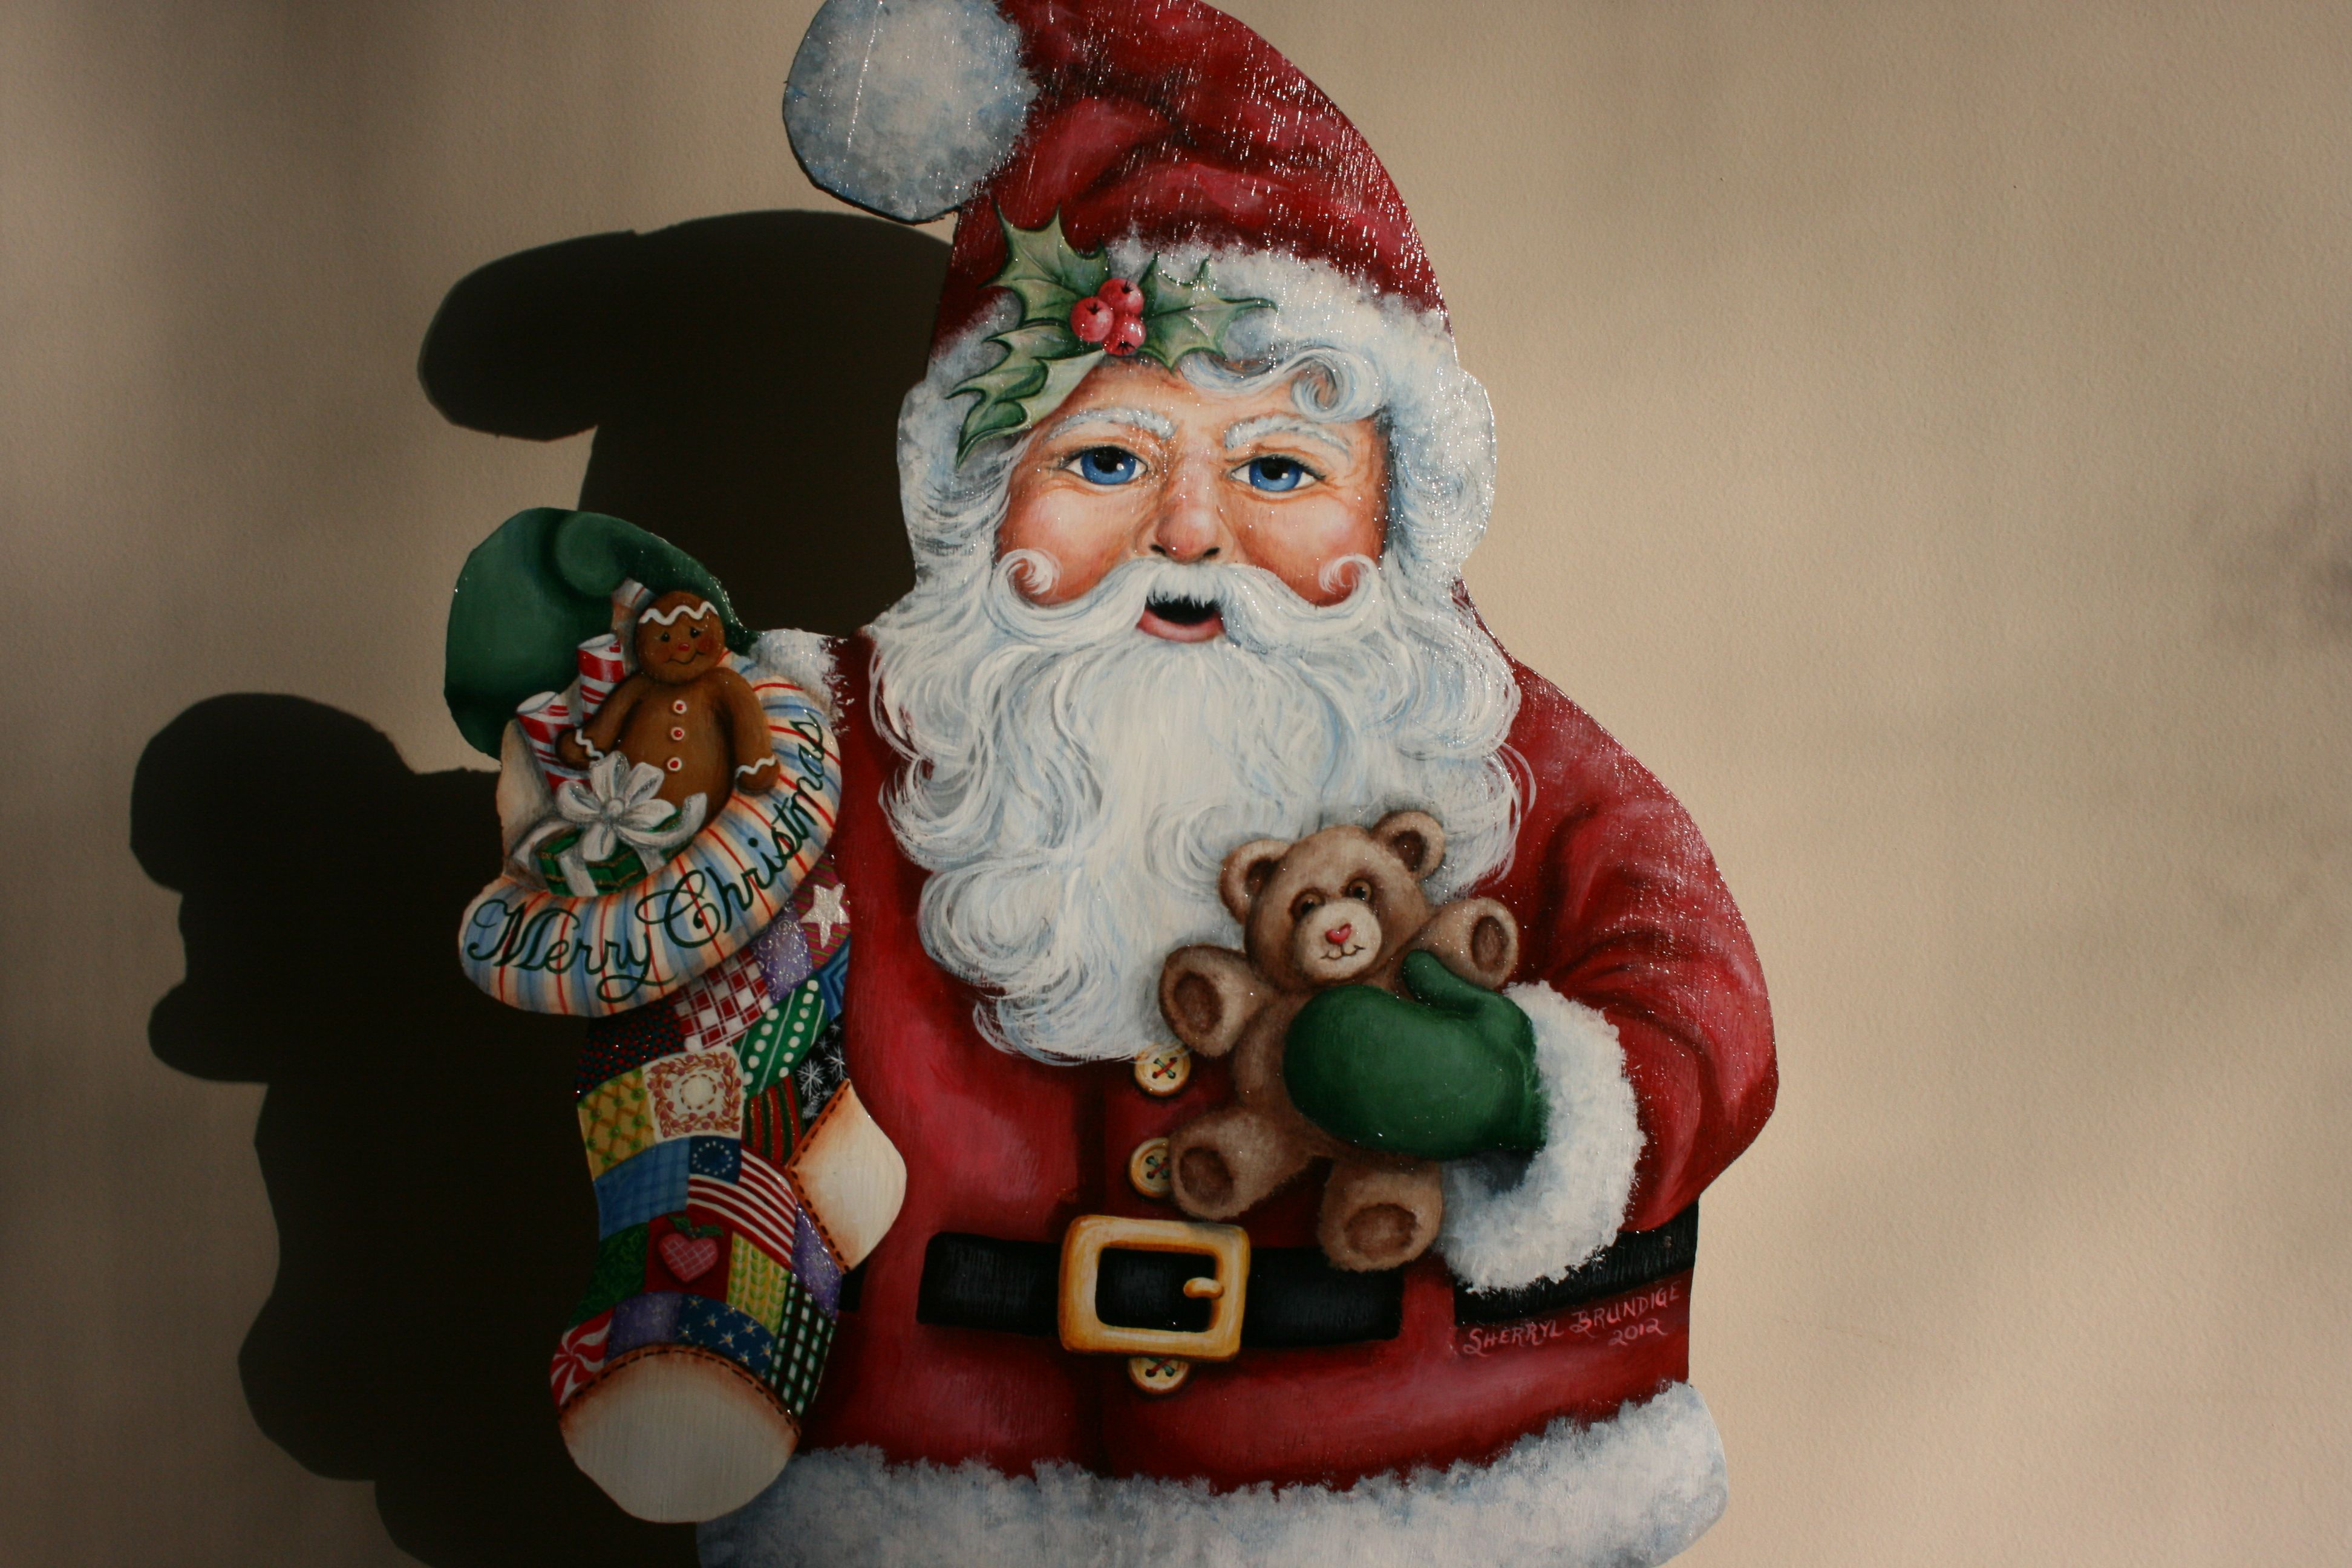 Hand painted Santa Claus with a teddy bear and Christmas stocking on wood by sherrylpaintz.